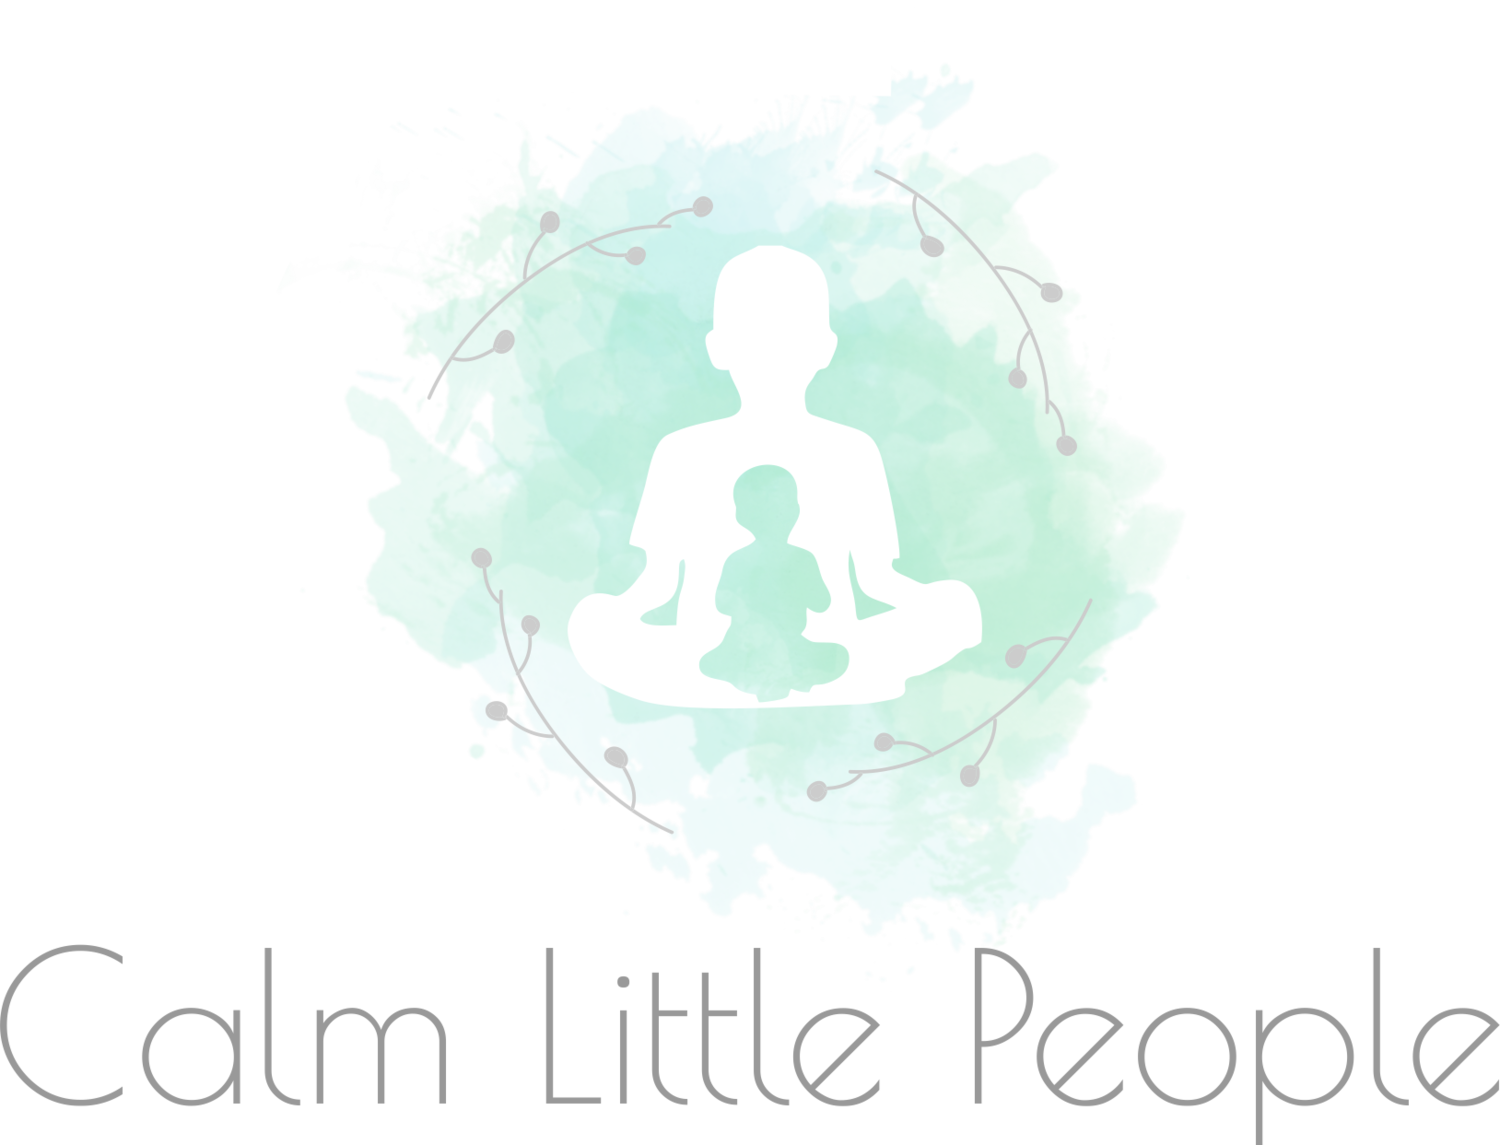 Calm Little People